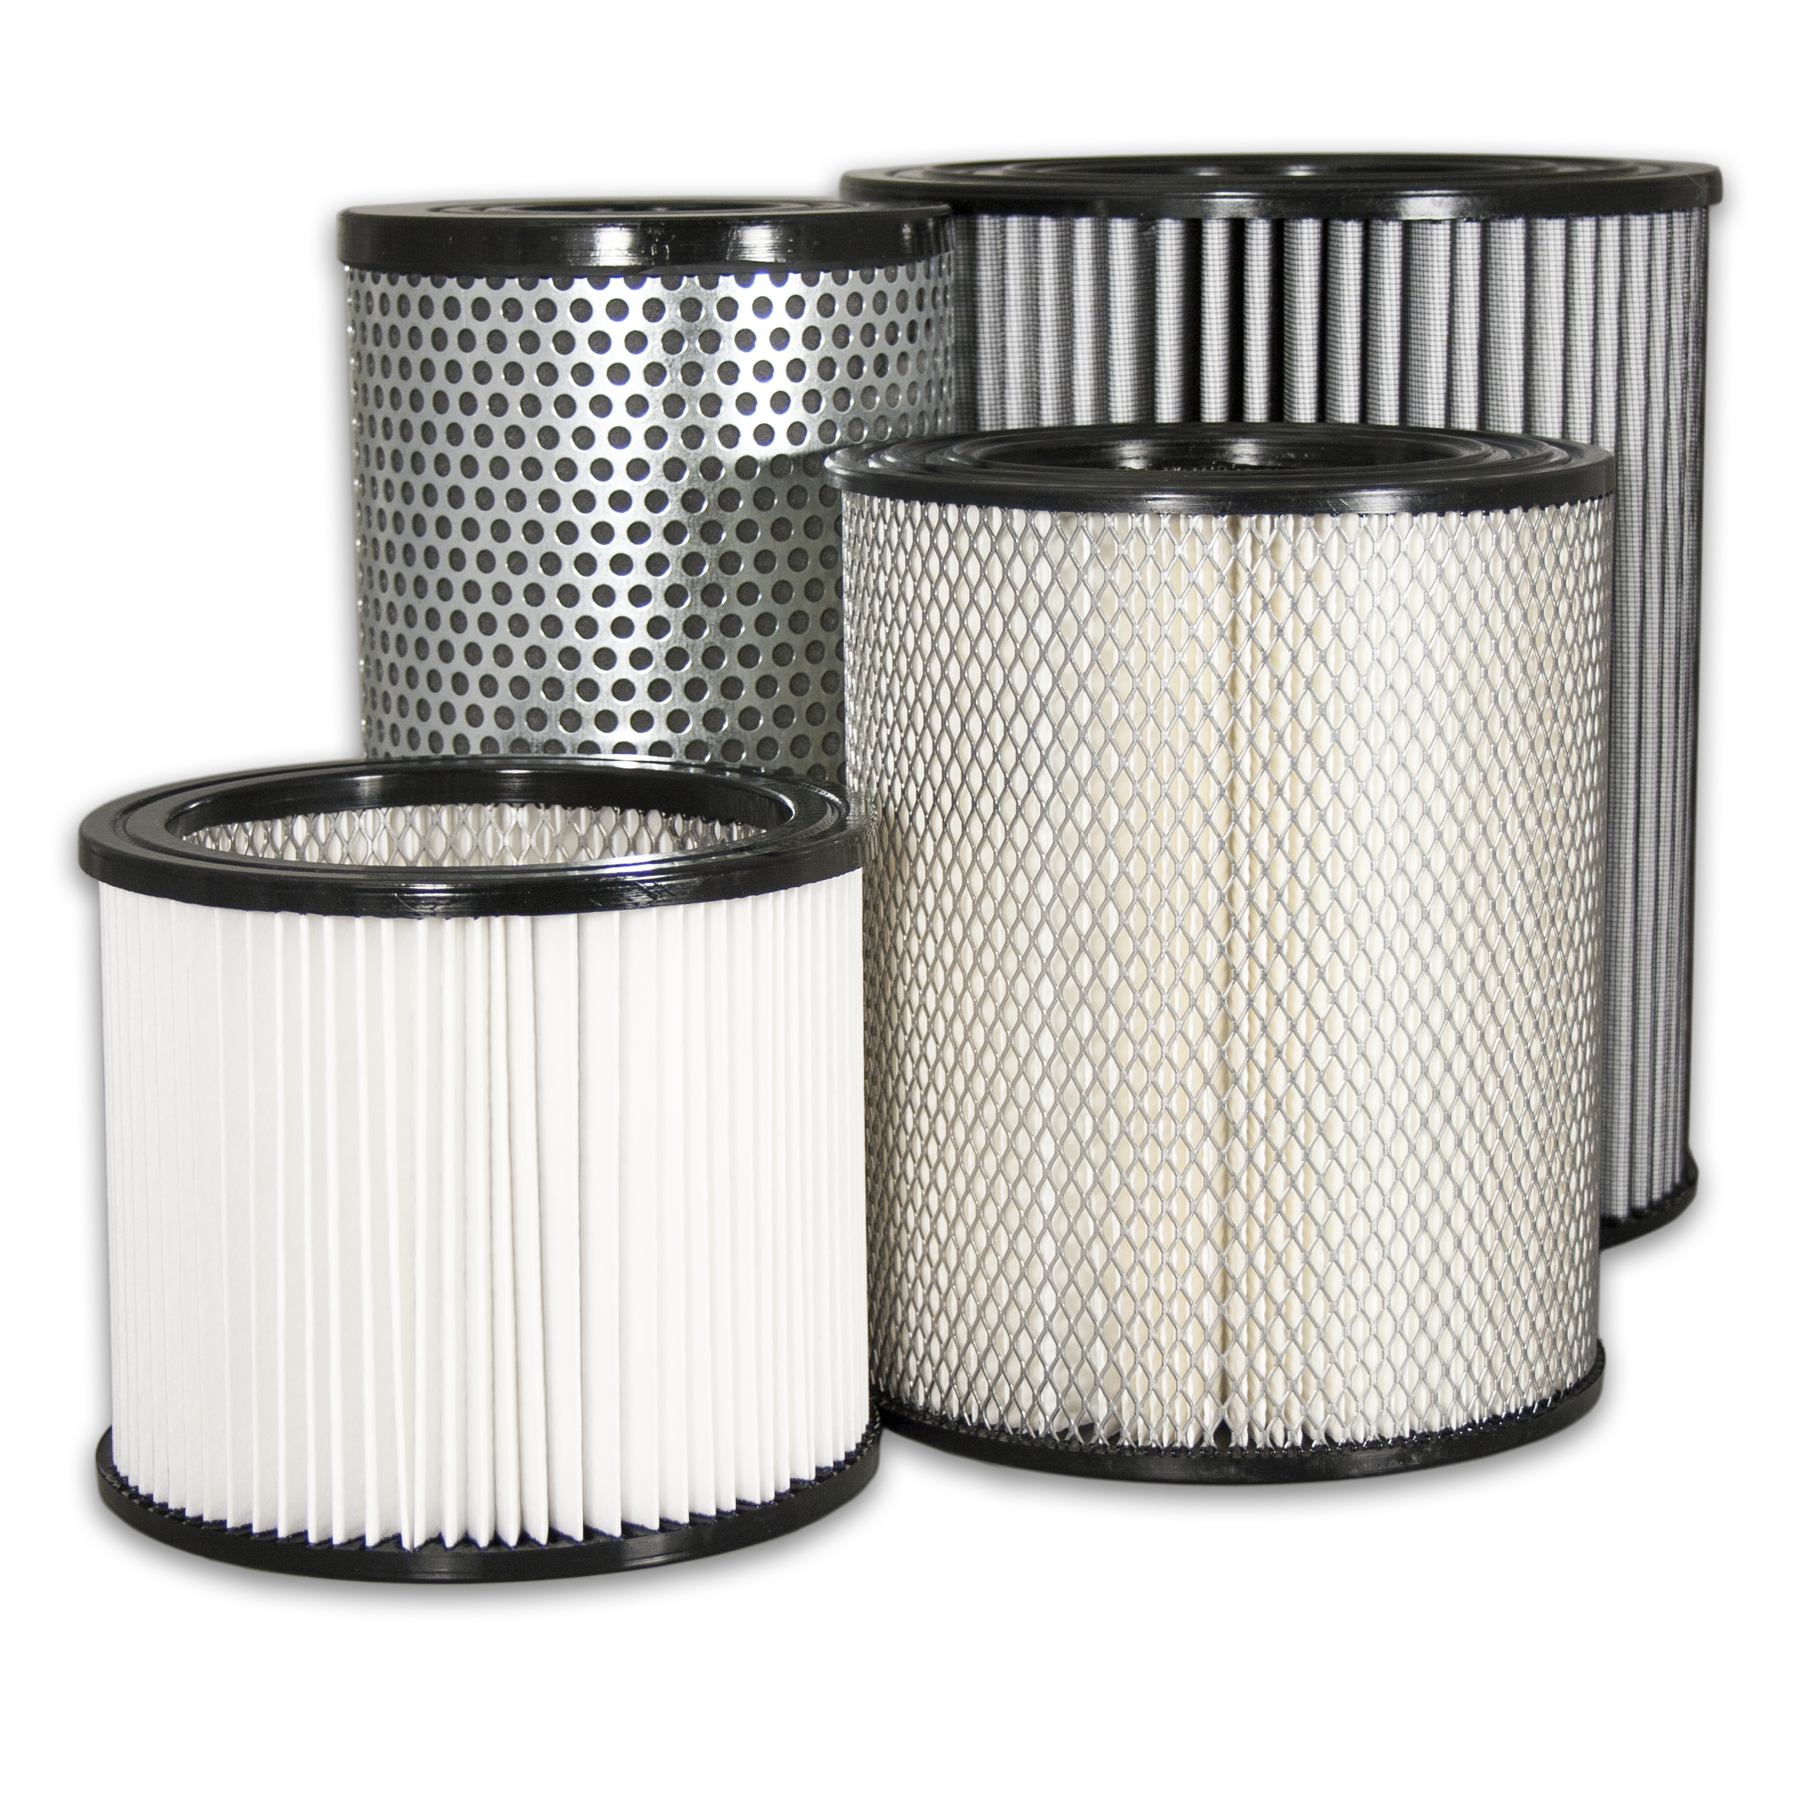 Industrial molded end filters from Sidco Filter to replace shawndra sparks, Airmaze, Consler Graver, Dollinger, Endustra, Filter Engineering, Gardener Denver, IFM, Ingersoll Rand, NAFCO, Royal, Solberg, Stoddard, Sunshine, and Universal filter elements.